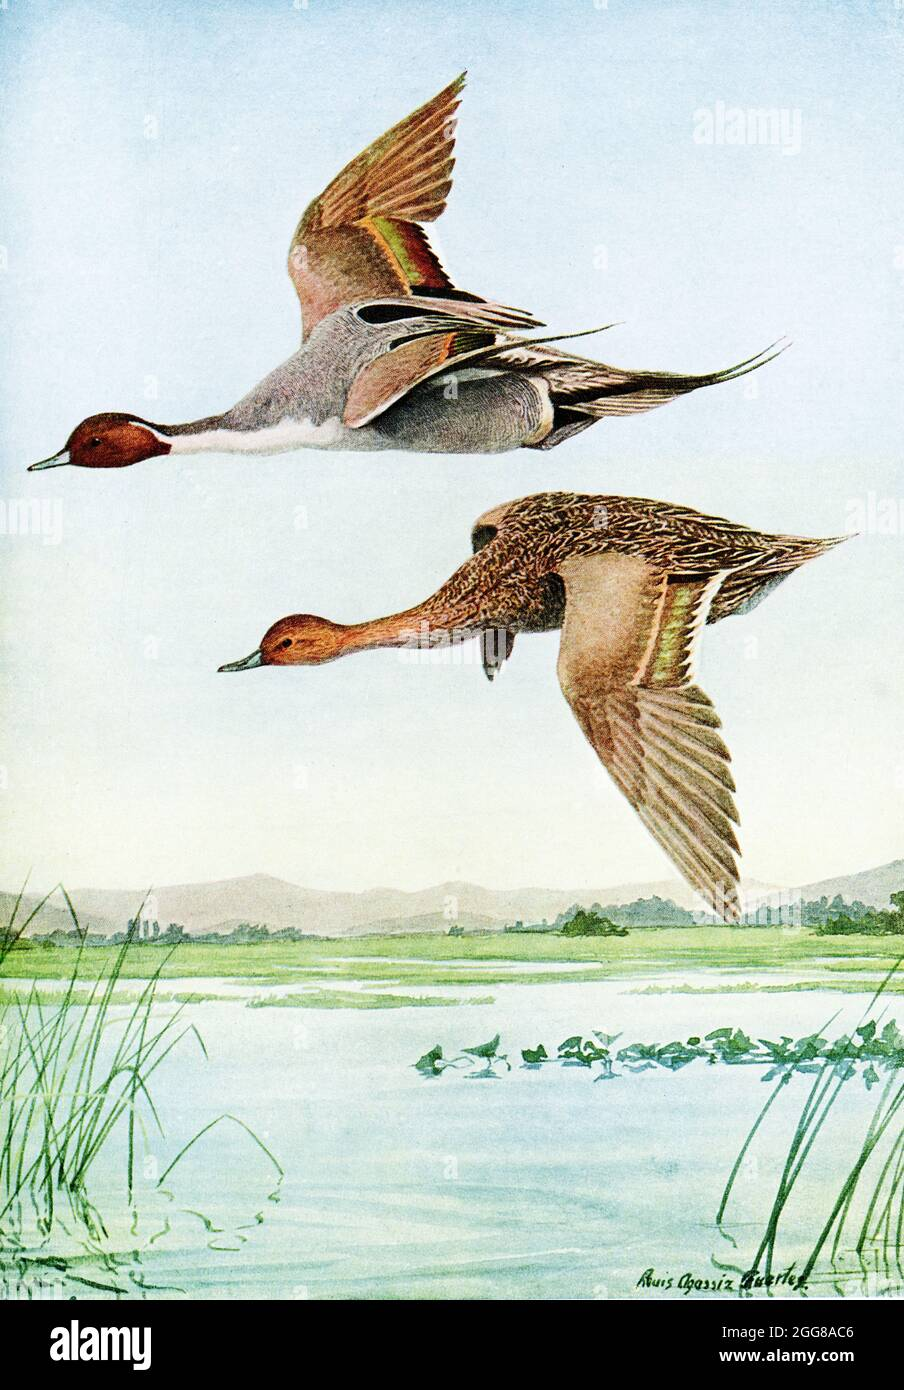 The 1917 caption reads: Pintail Dafila acuta (Linnaeus). The top is a male pintail duck; the bottom is a female. The illustrator is Louis Agassiz Fuertes, Fuertes (1874-1927), an American ornithologist, illustrator and artist who set the rigorous and current-day standards for ornithological art and naturalist depiction. He is considered one of the most prolific American bird artists, second only to his guiding professional predecessor John James Audubon. Stock Photo